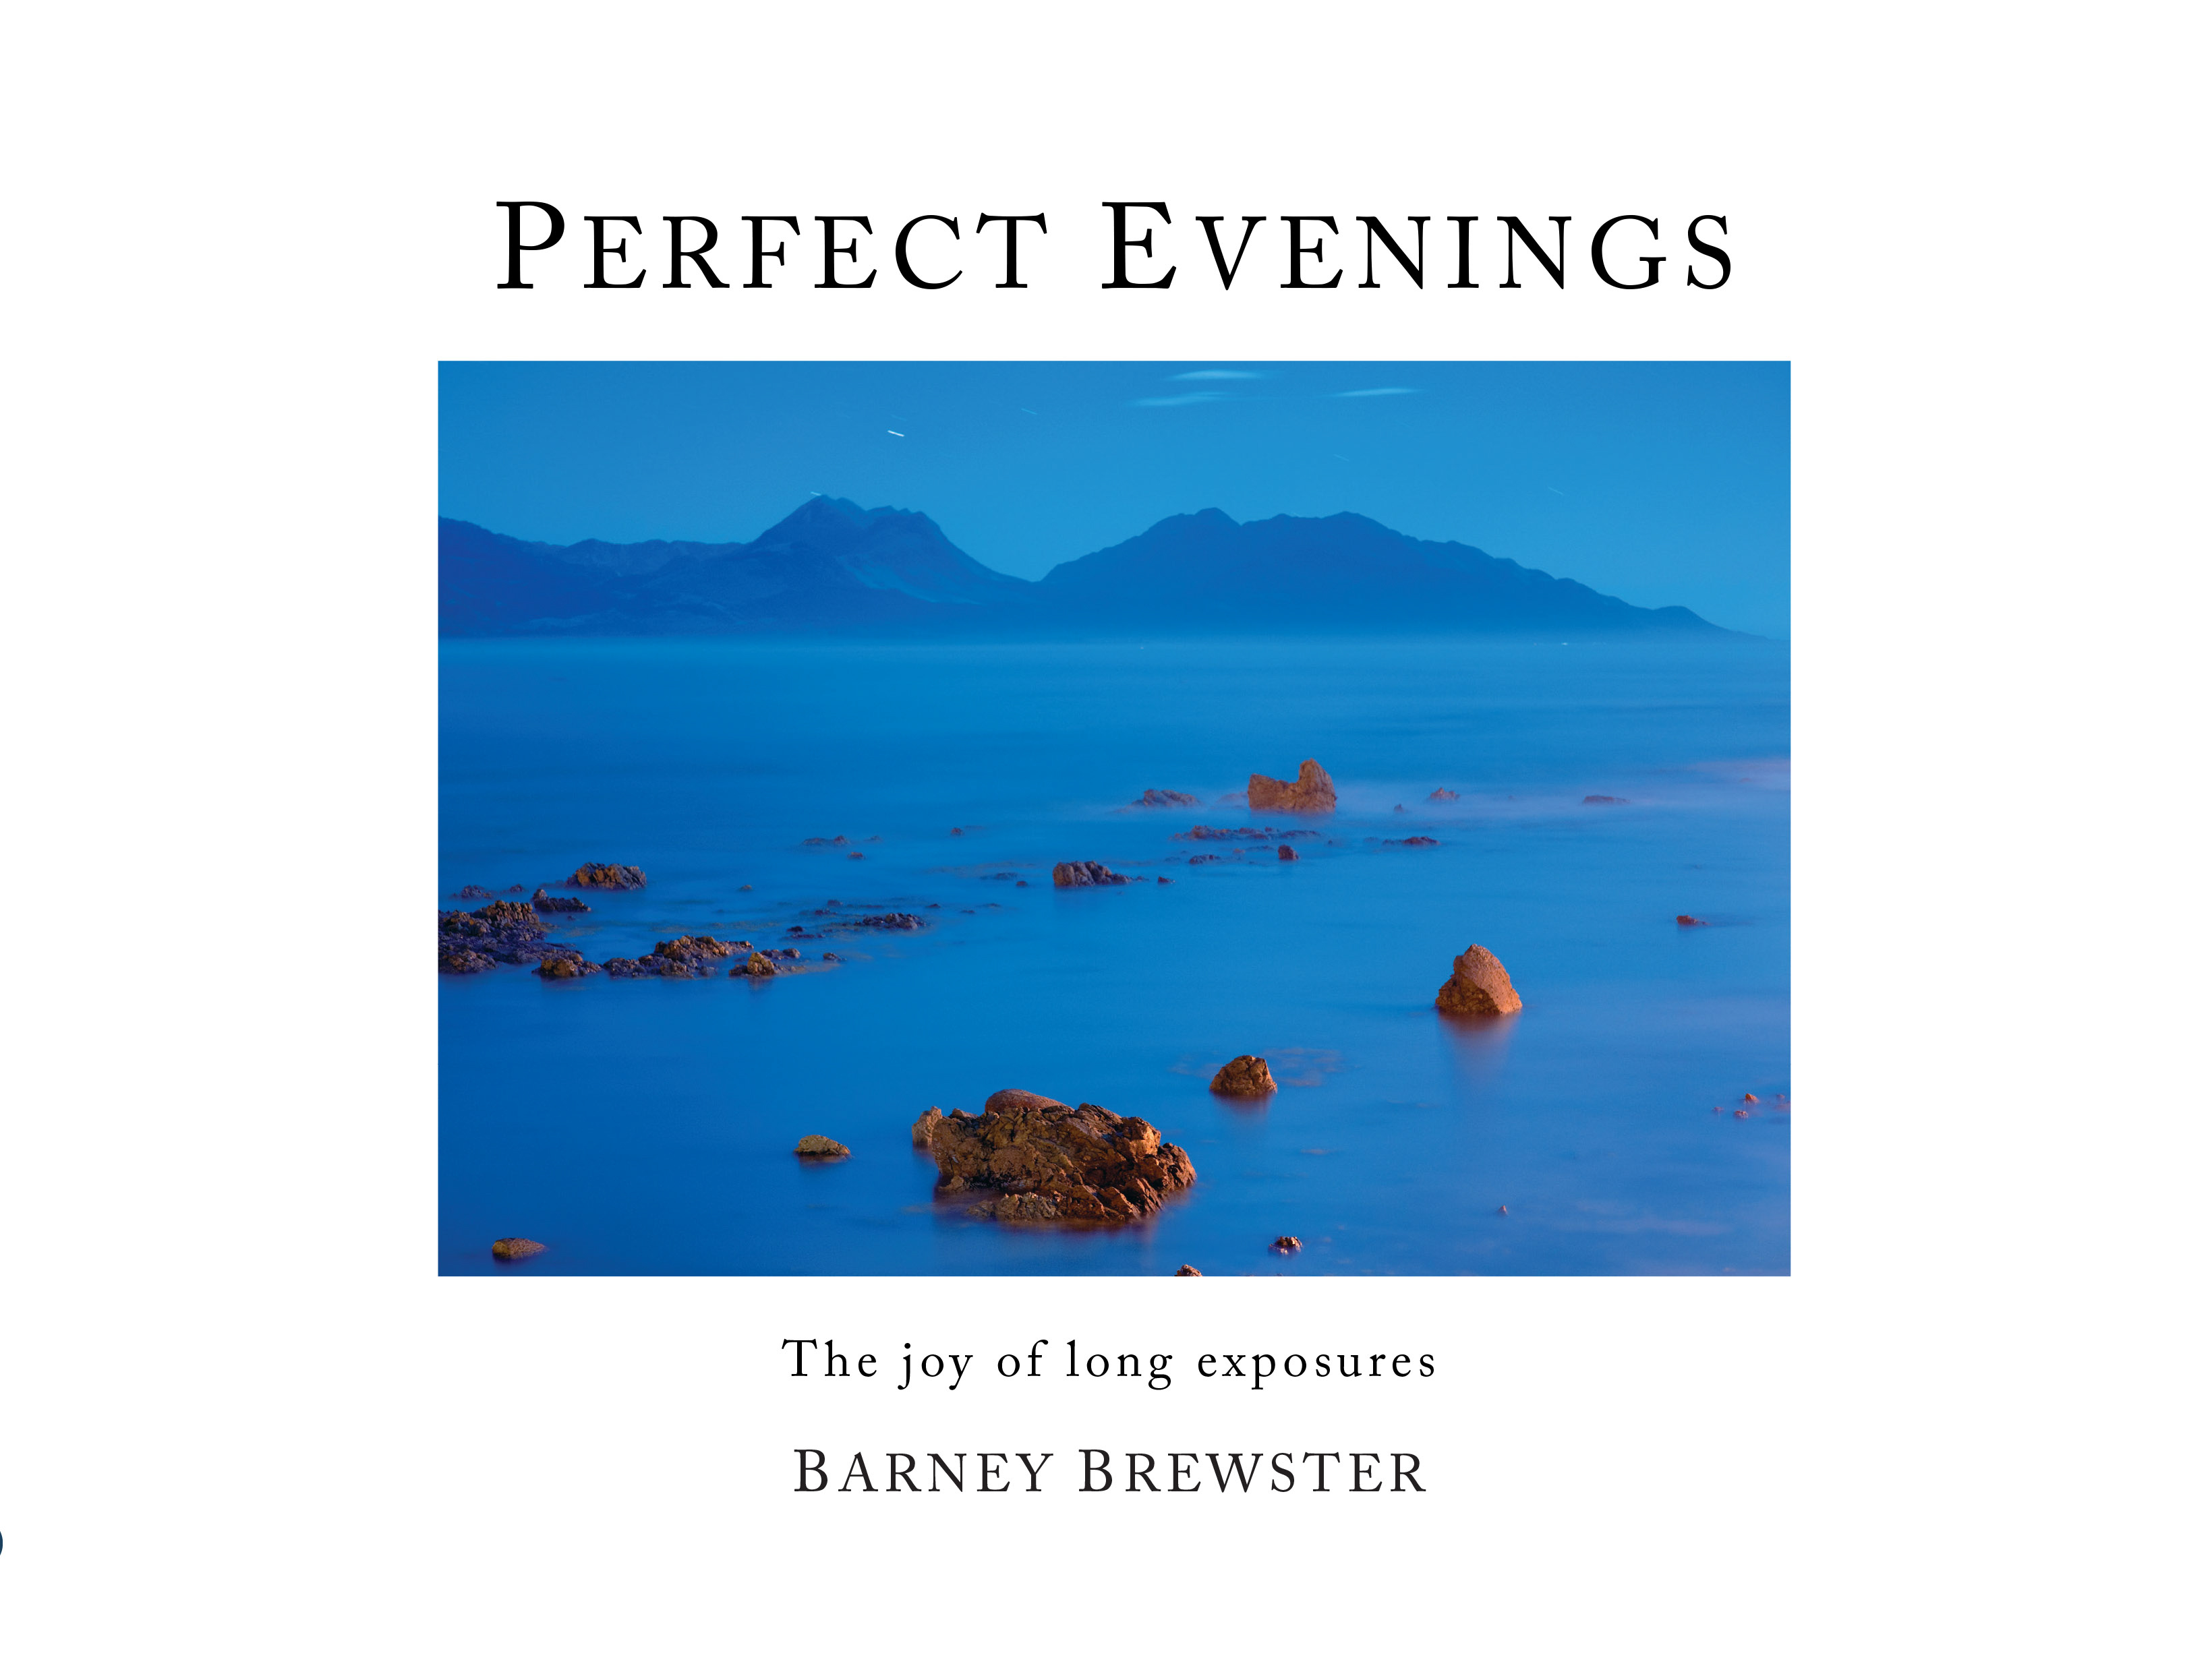 Perfect Evenings: The joy of long exposures - 92 pages, 21 x 27.7cm